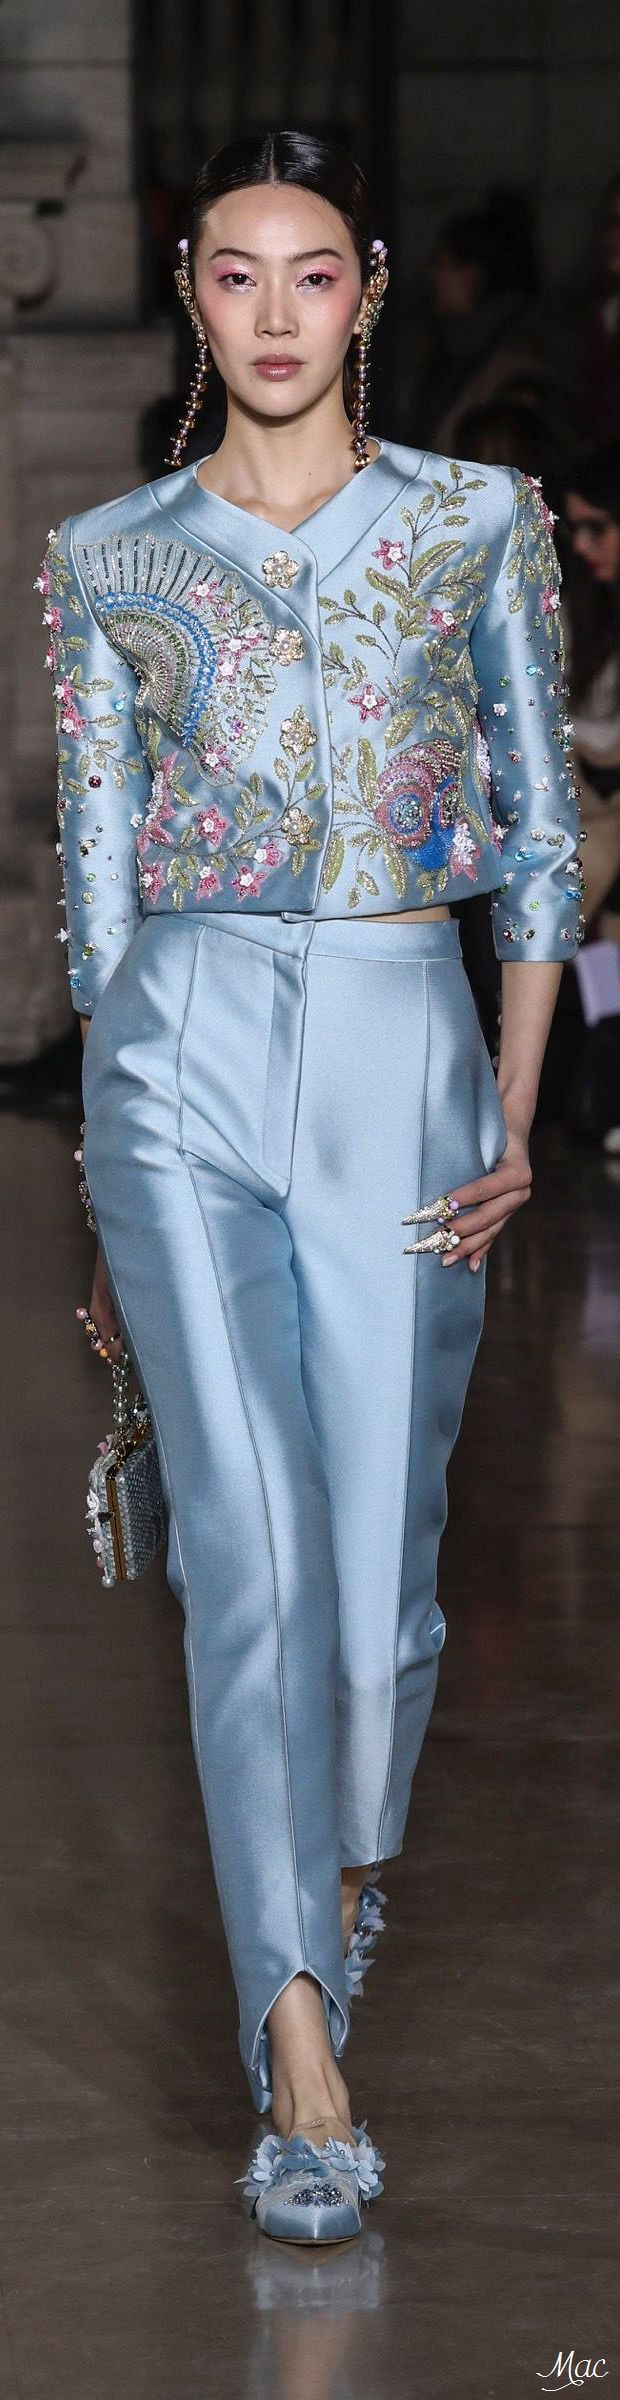 Best 25 Georges Hobeika Ideas On Pinterest Pandora